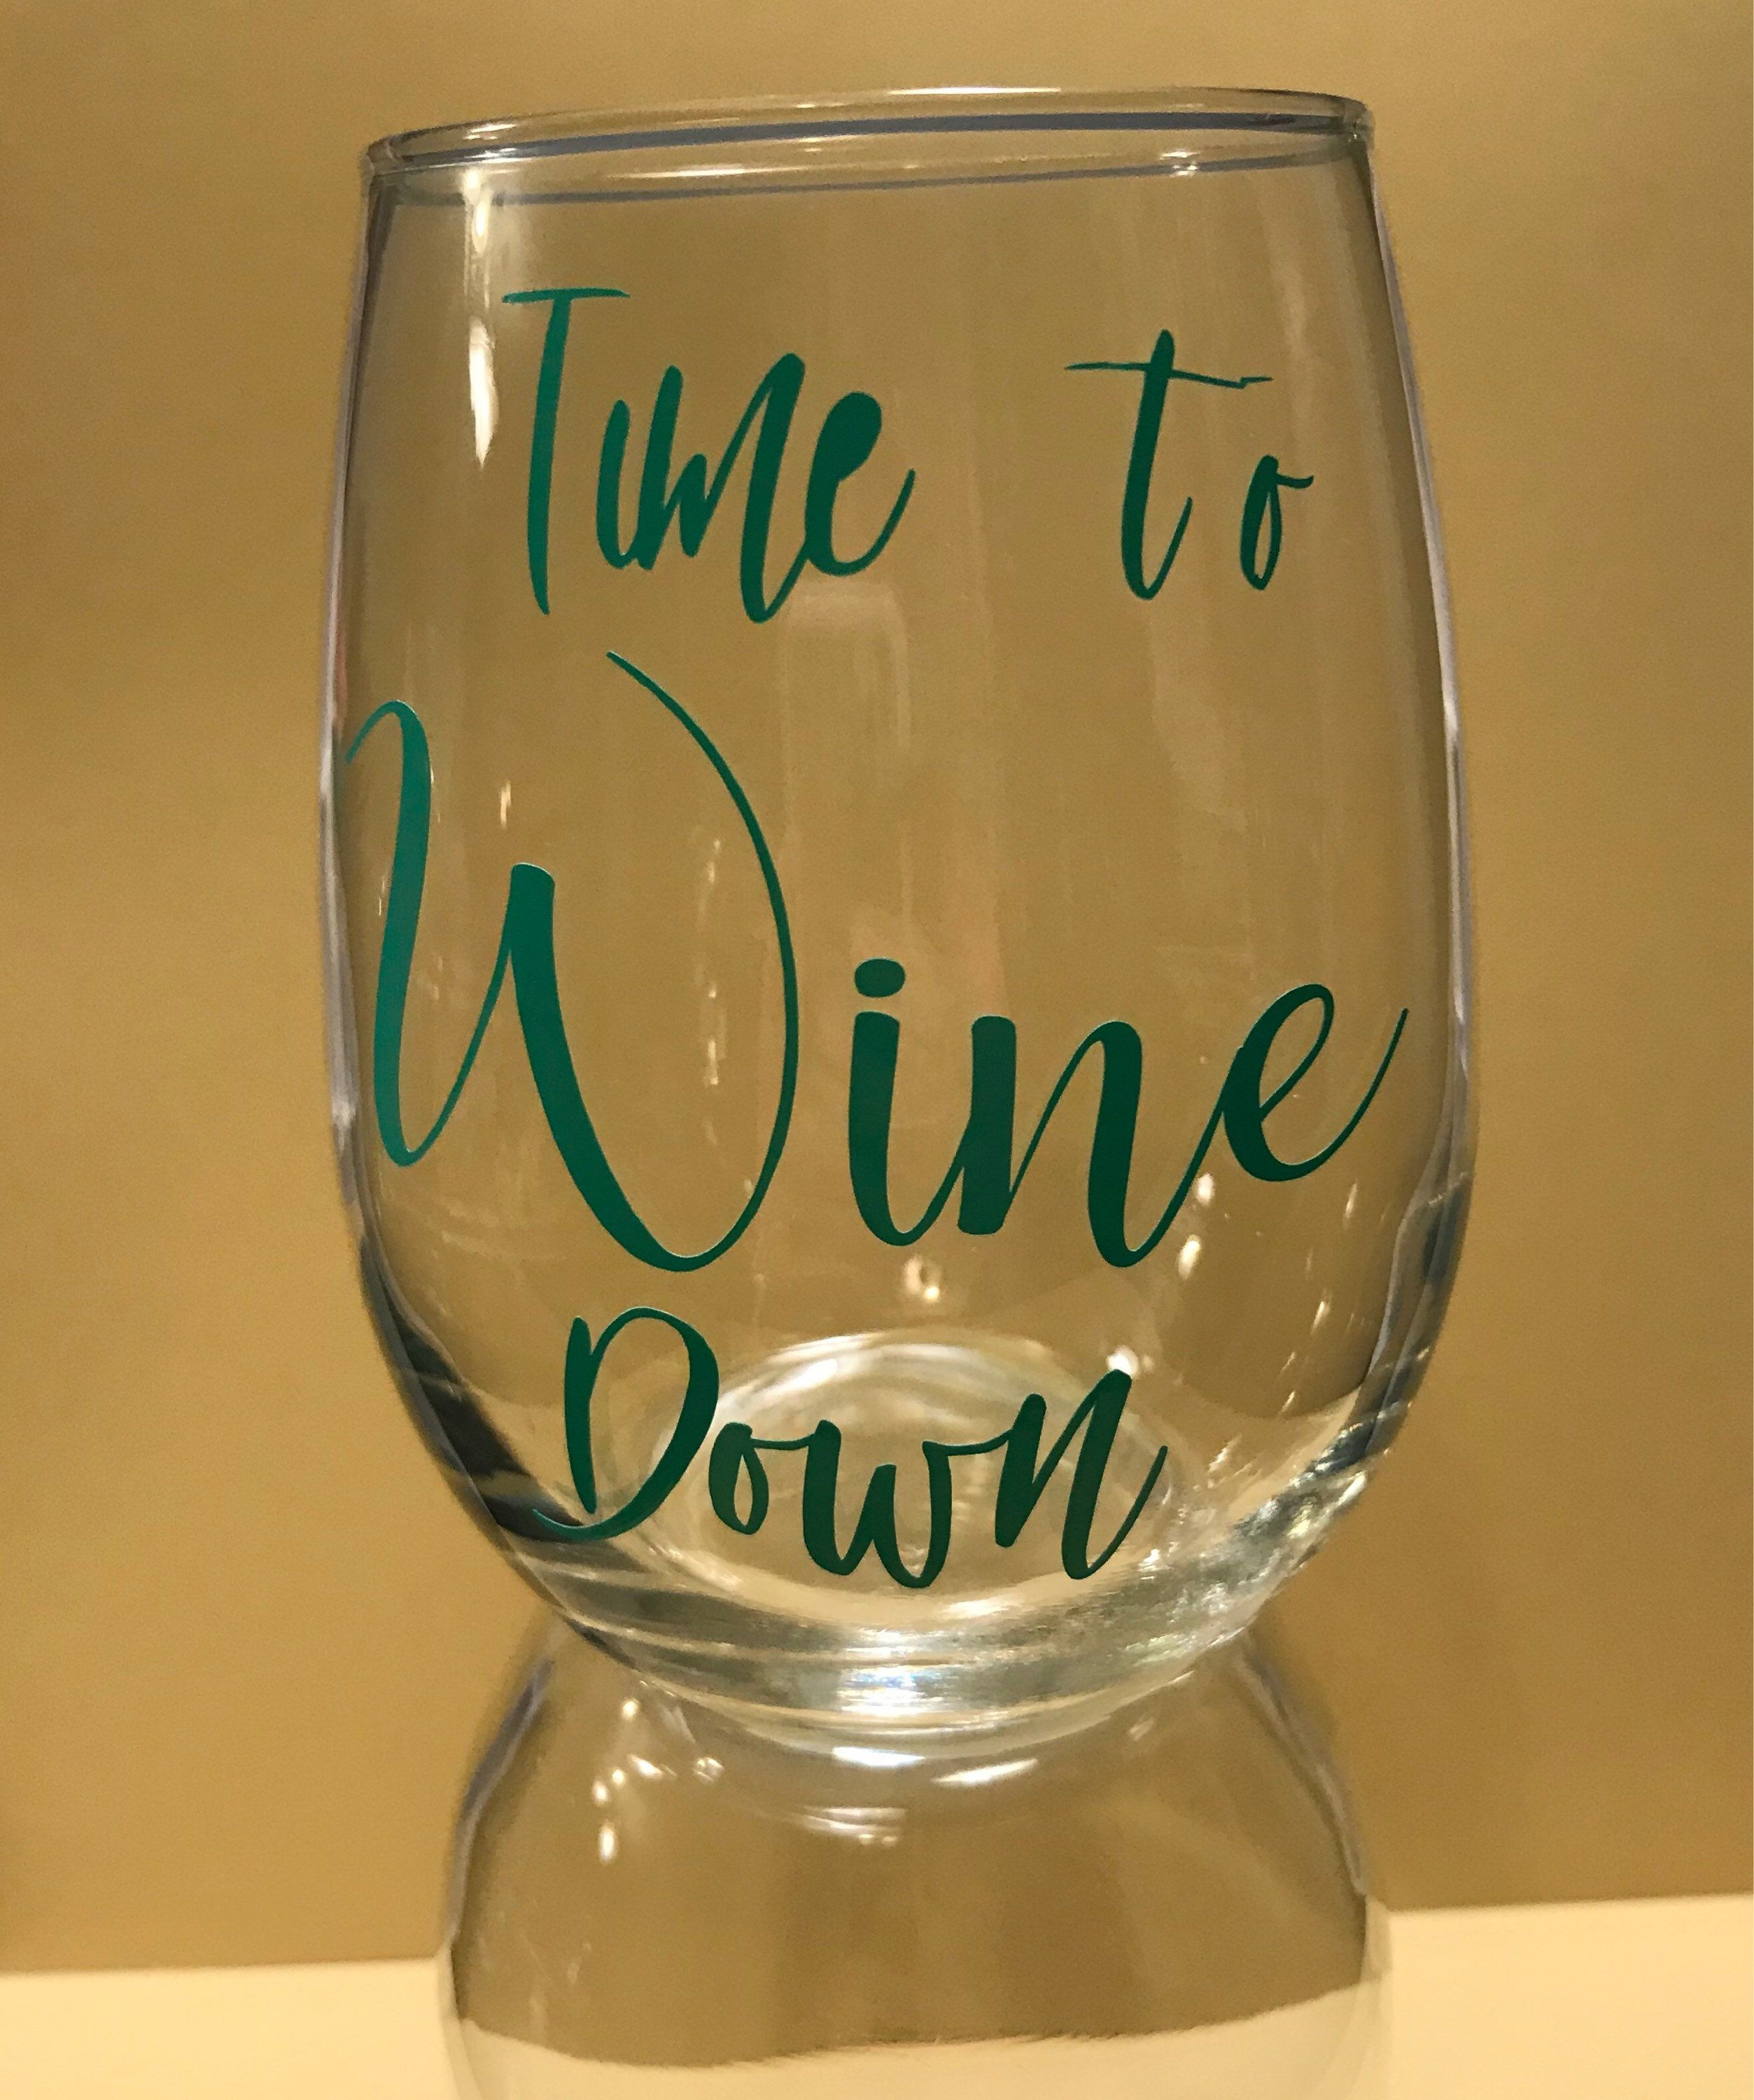 Stemless wine glass time to wine down funny saying wine glass